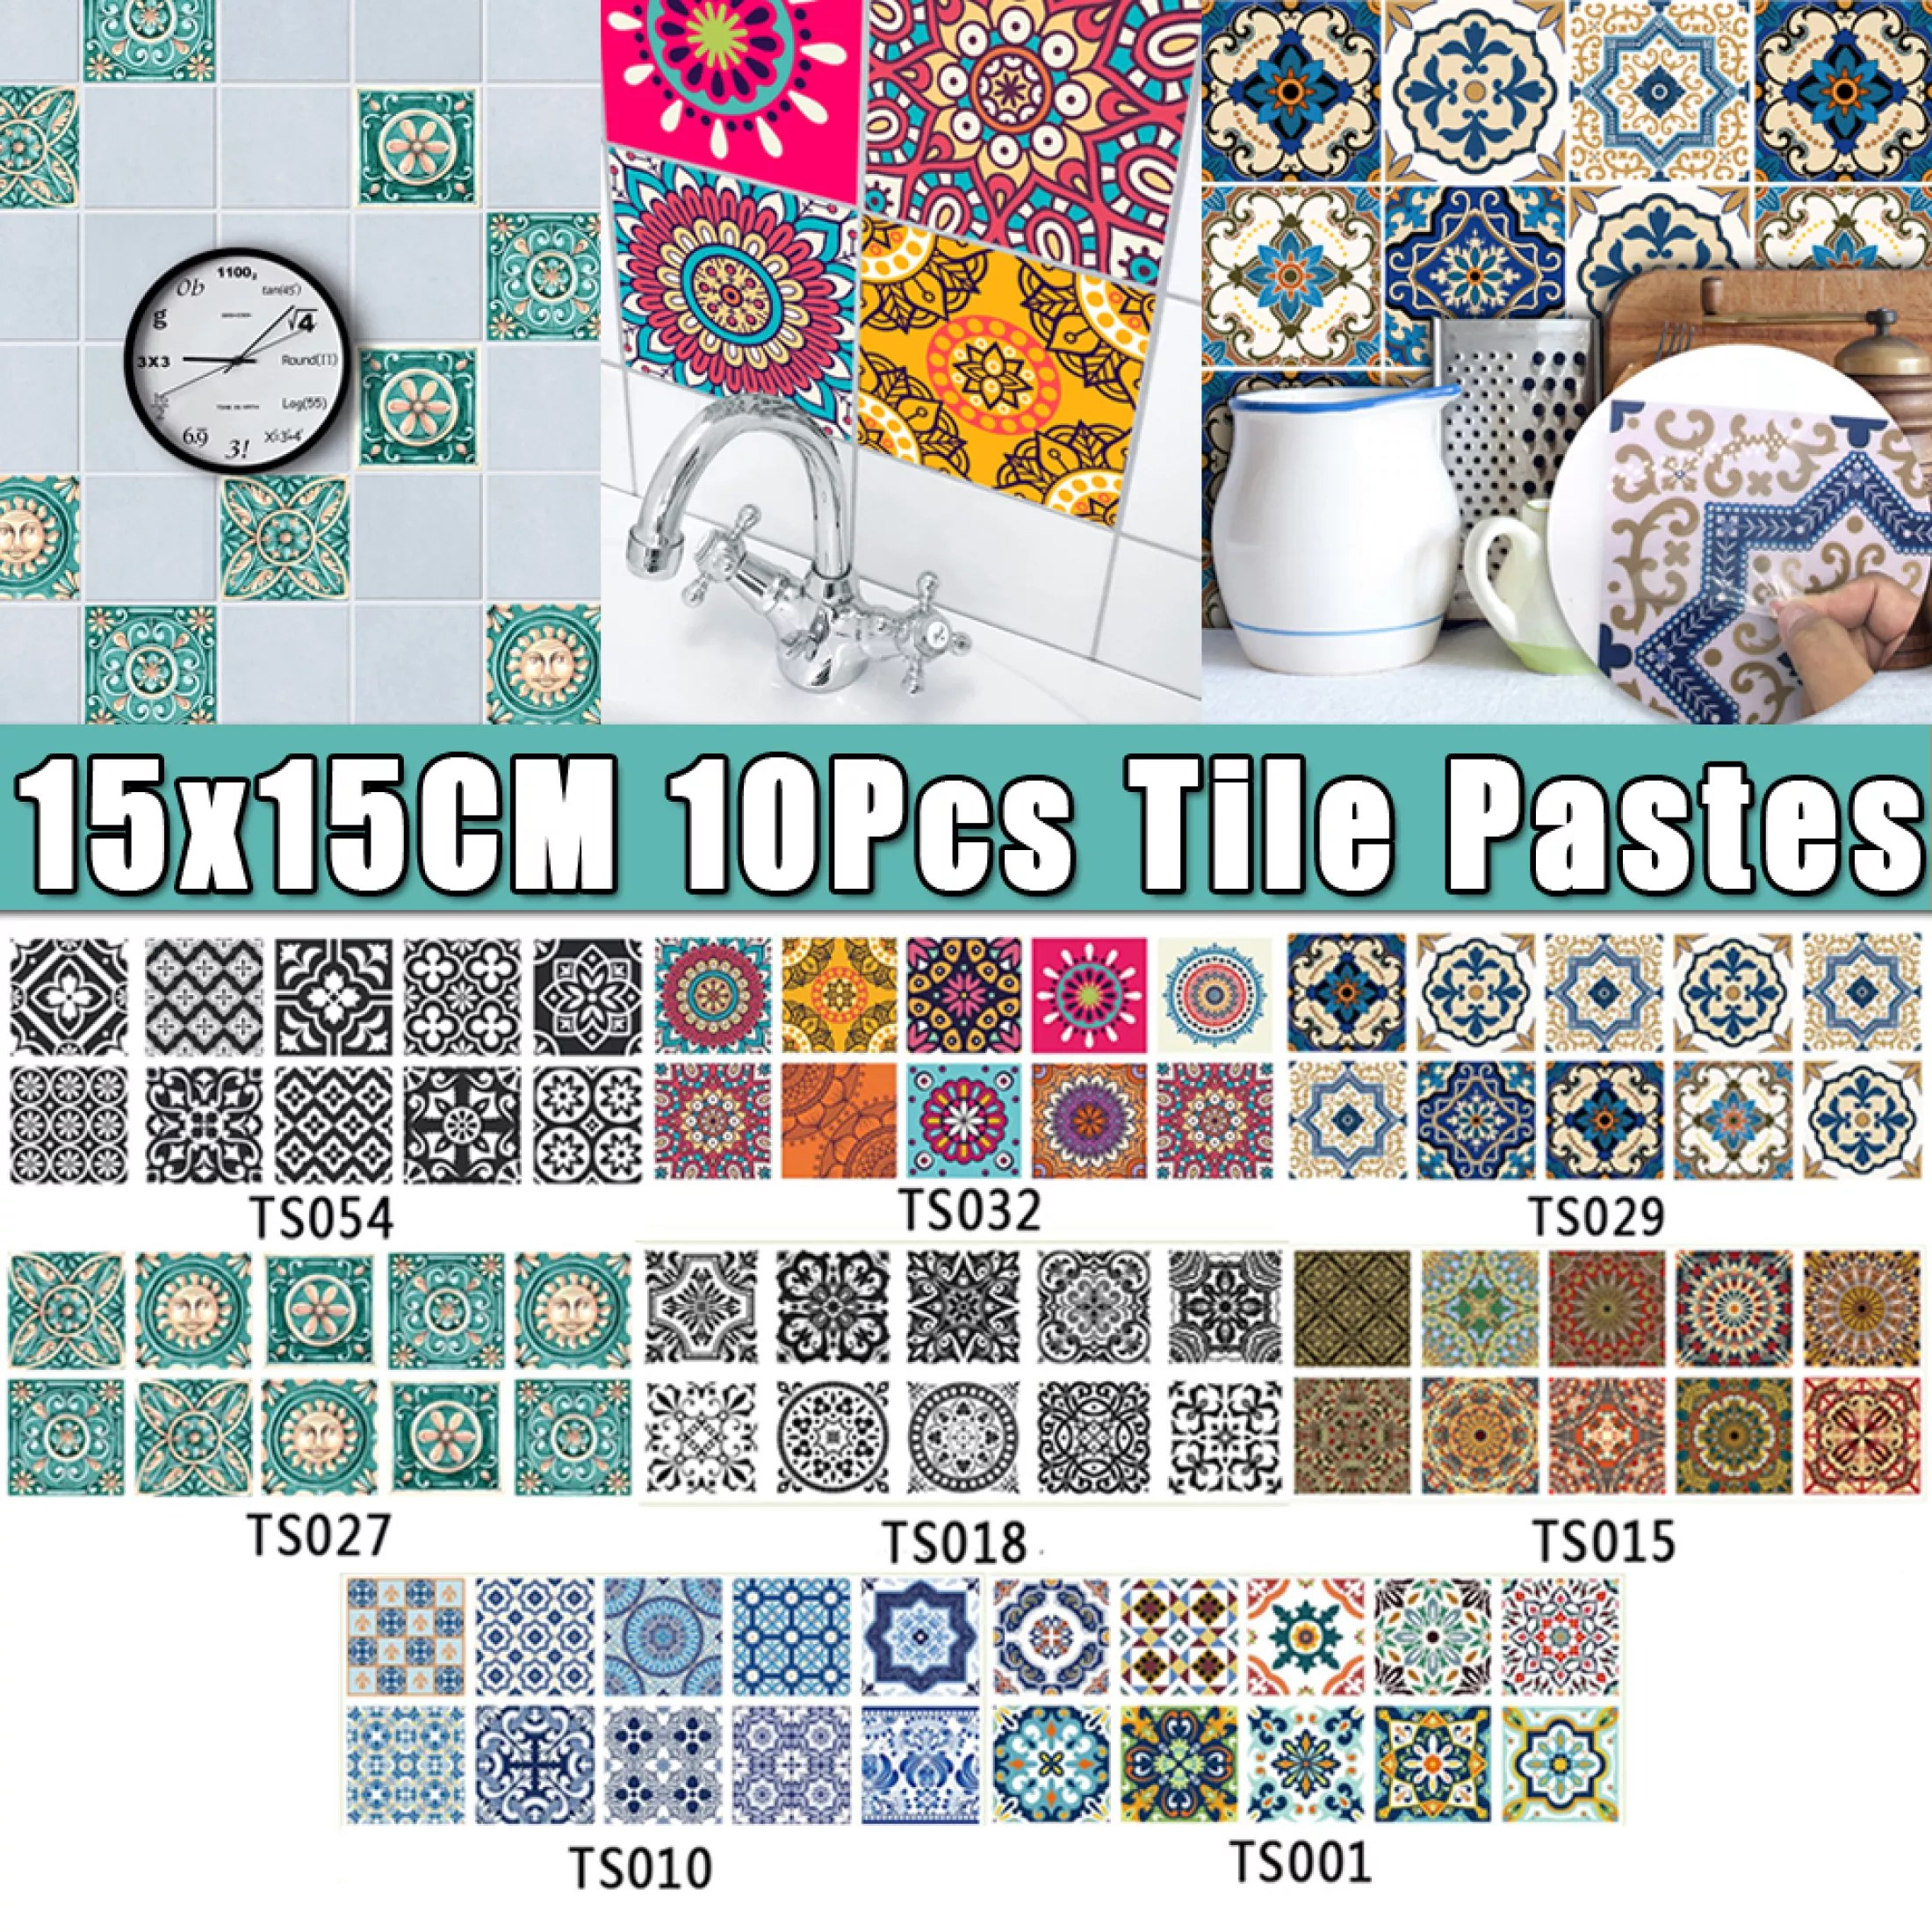 10pcs modern art nordic style waterproof wall decor tiles mosaic sticker square floor reform decoration adhesive for kitchen bathroom room wall